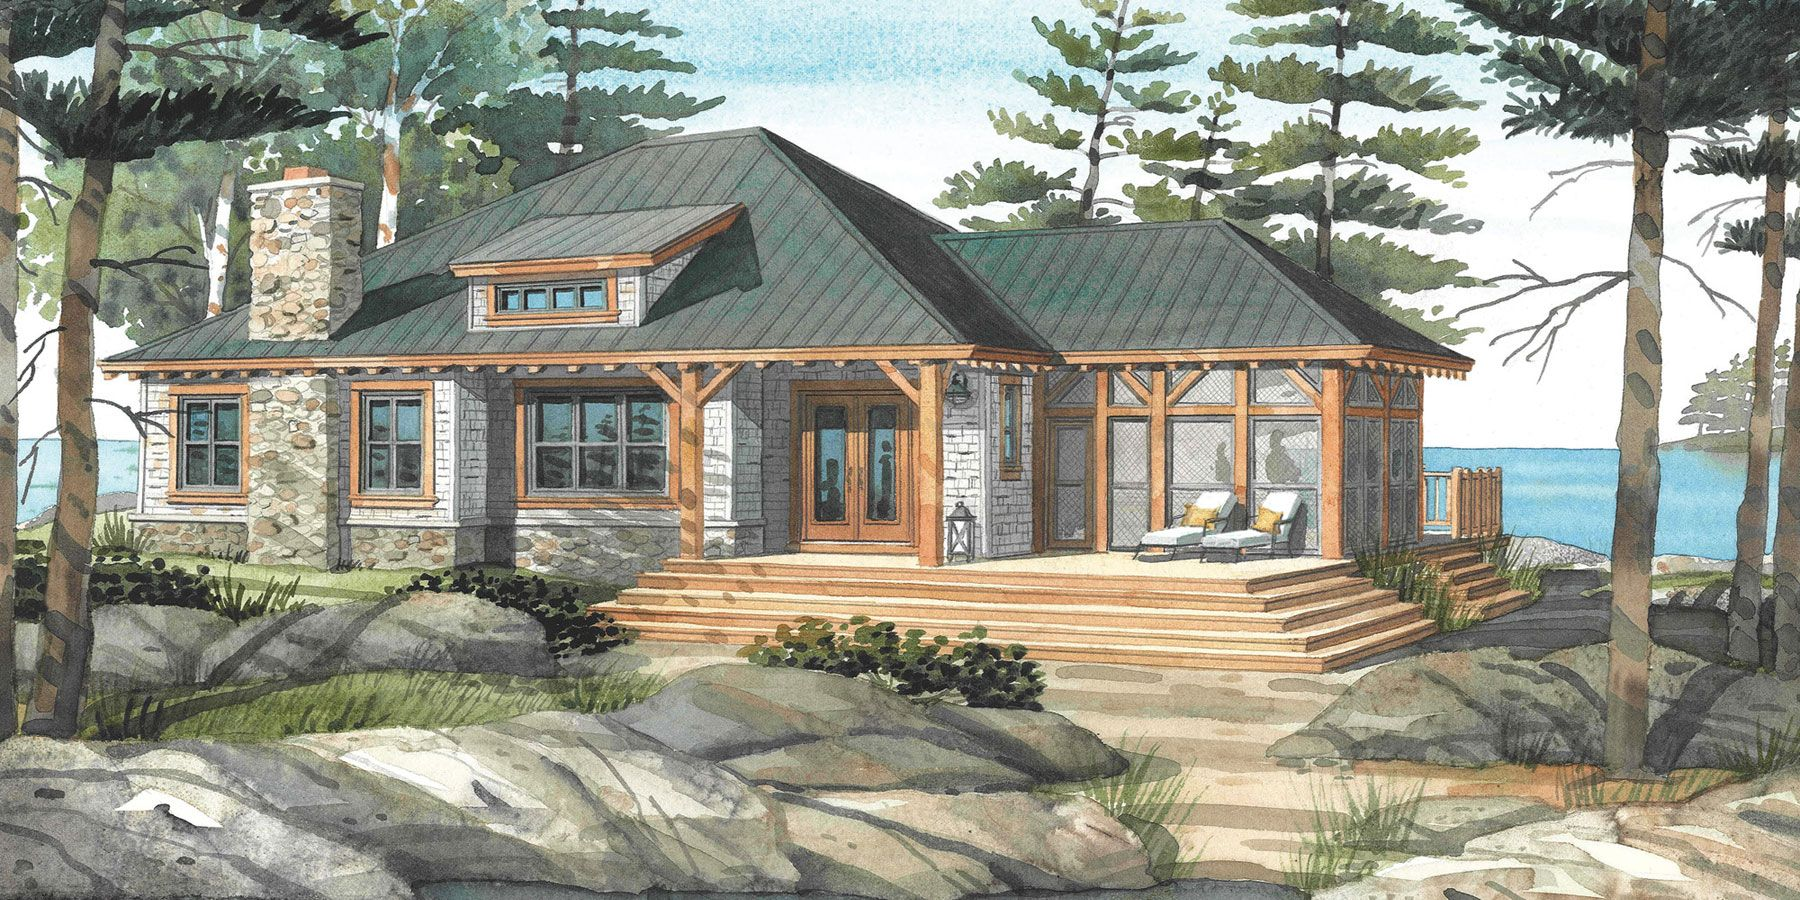 Cottage house plans with porches Normerica Custom Timber Frame Home Designs  cottage house plans with porches. Cottage Home Design  Trendy Ideas Cottage Home Designs Plain